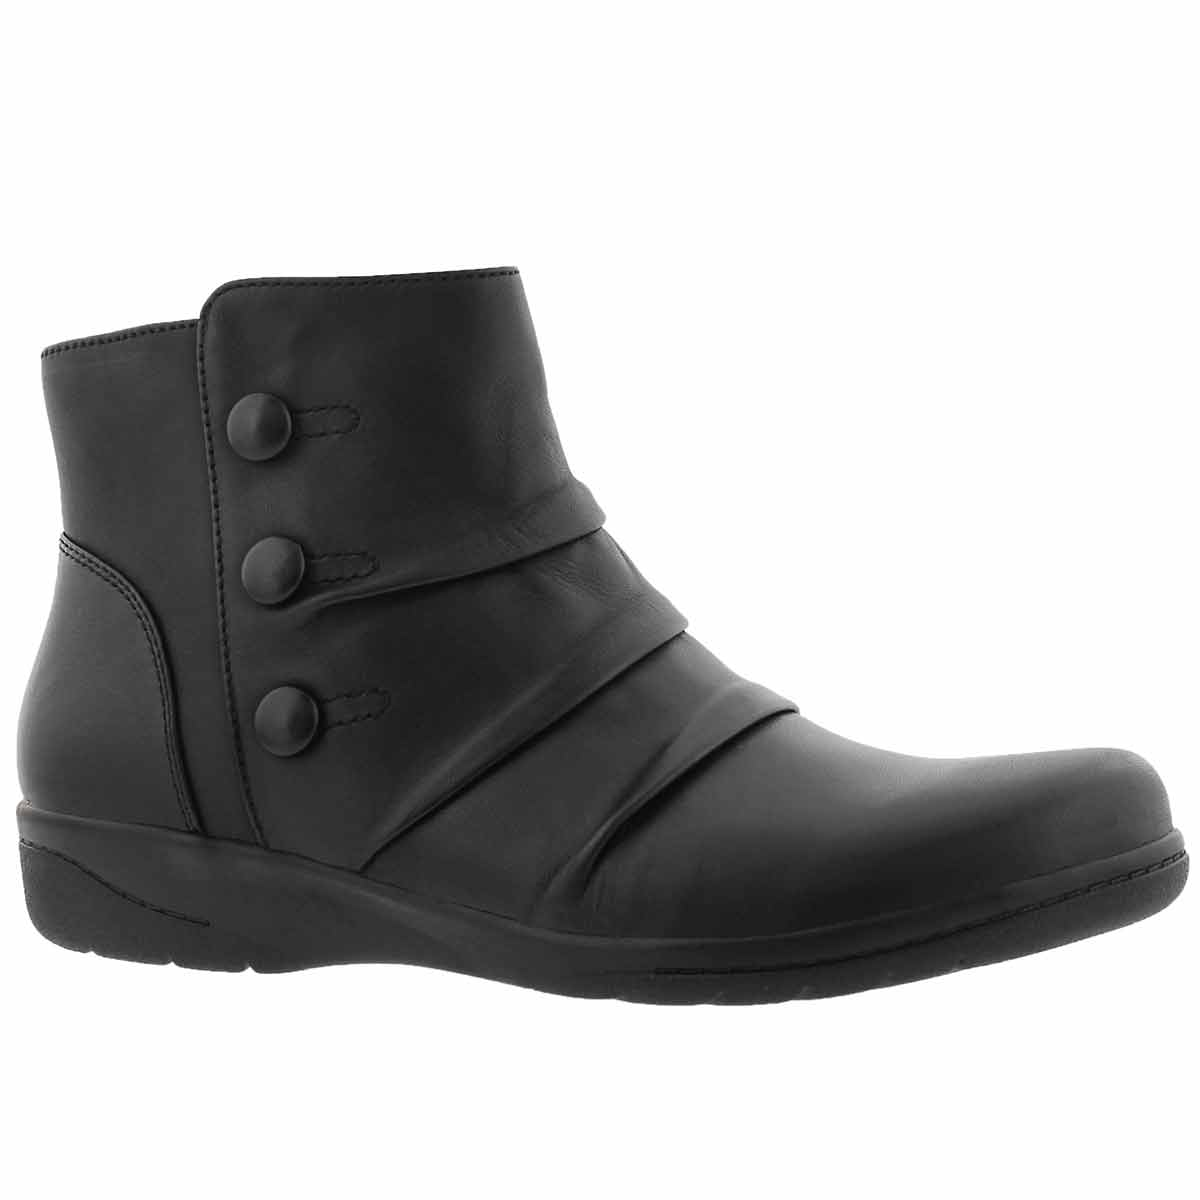 Women's CHEYN ANNE black casual ankle boots